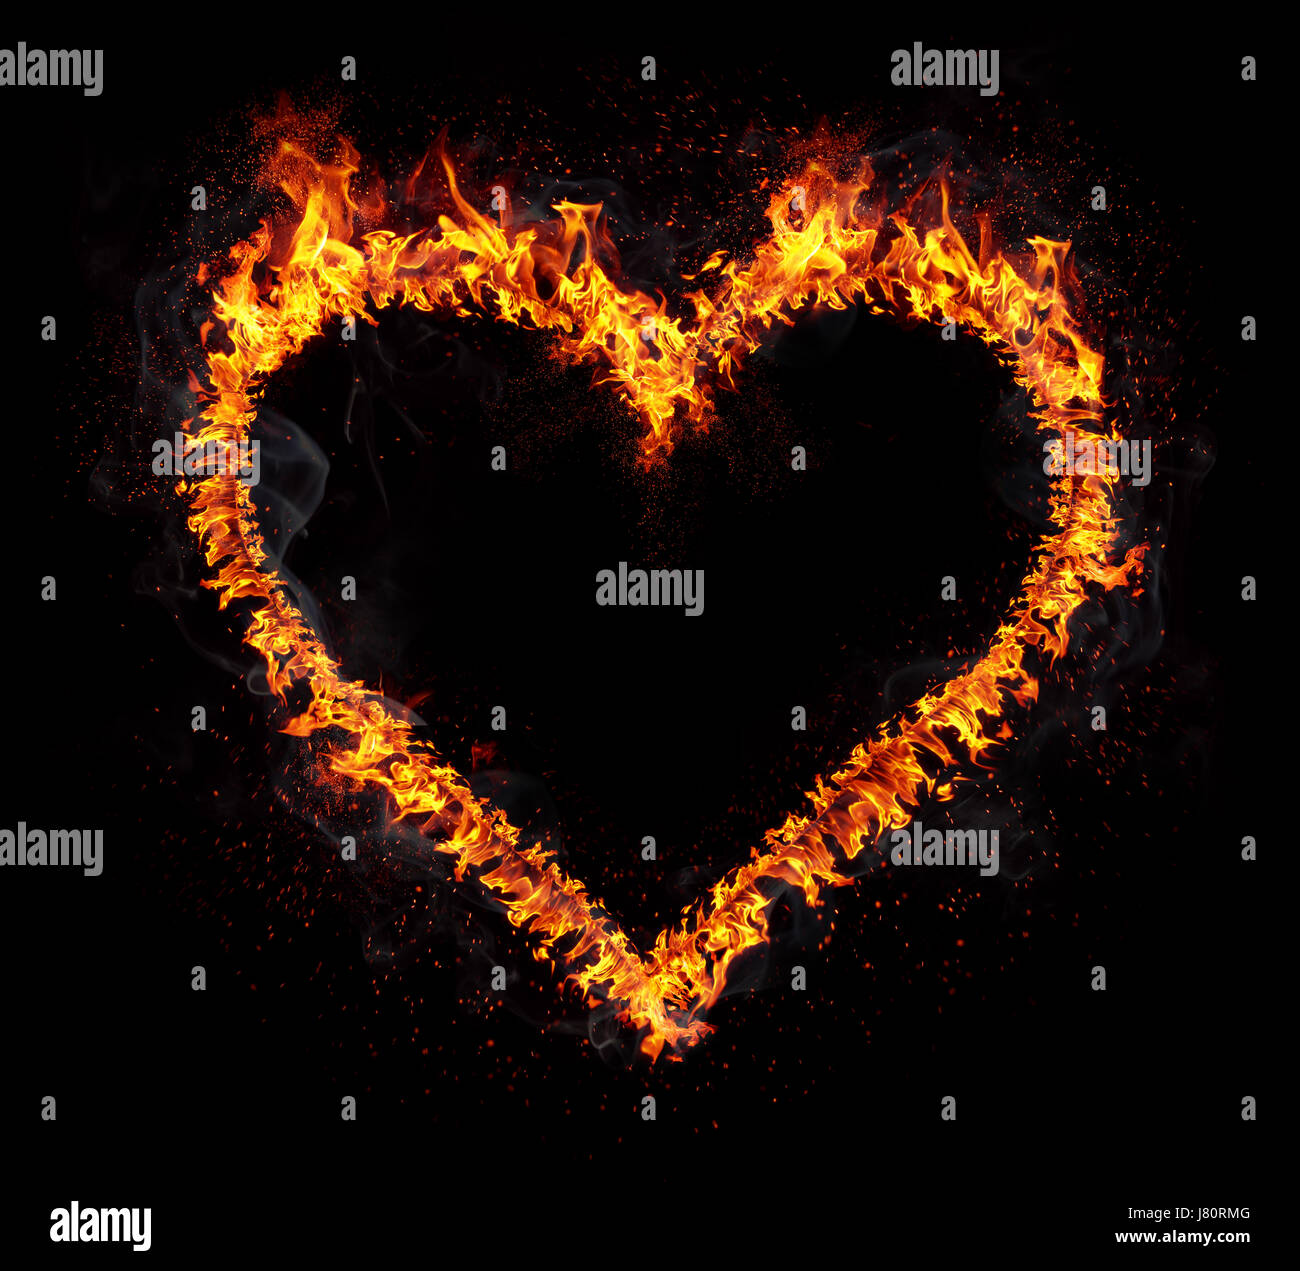 ad8caba90358 Flaming heart isolated on black background. Love symbol Stock Photo ...